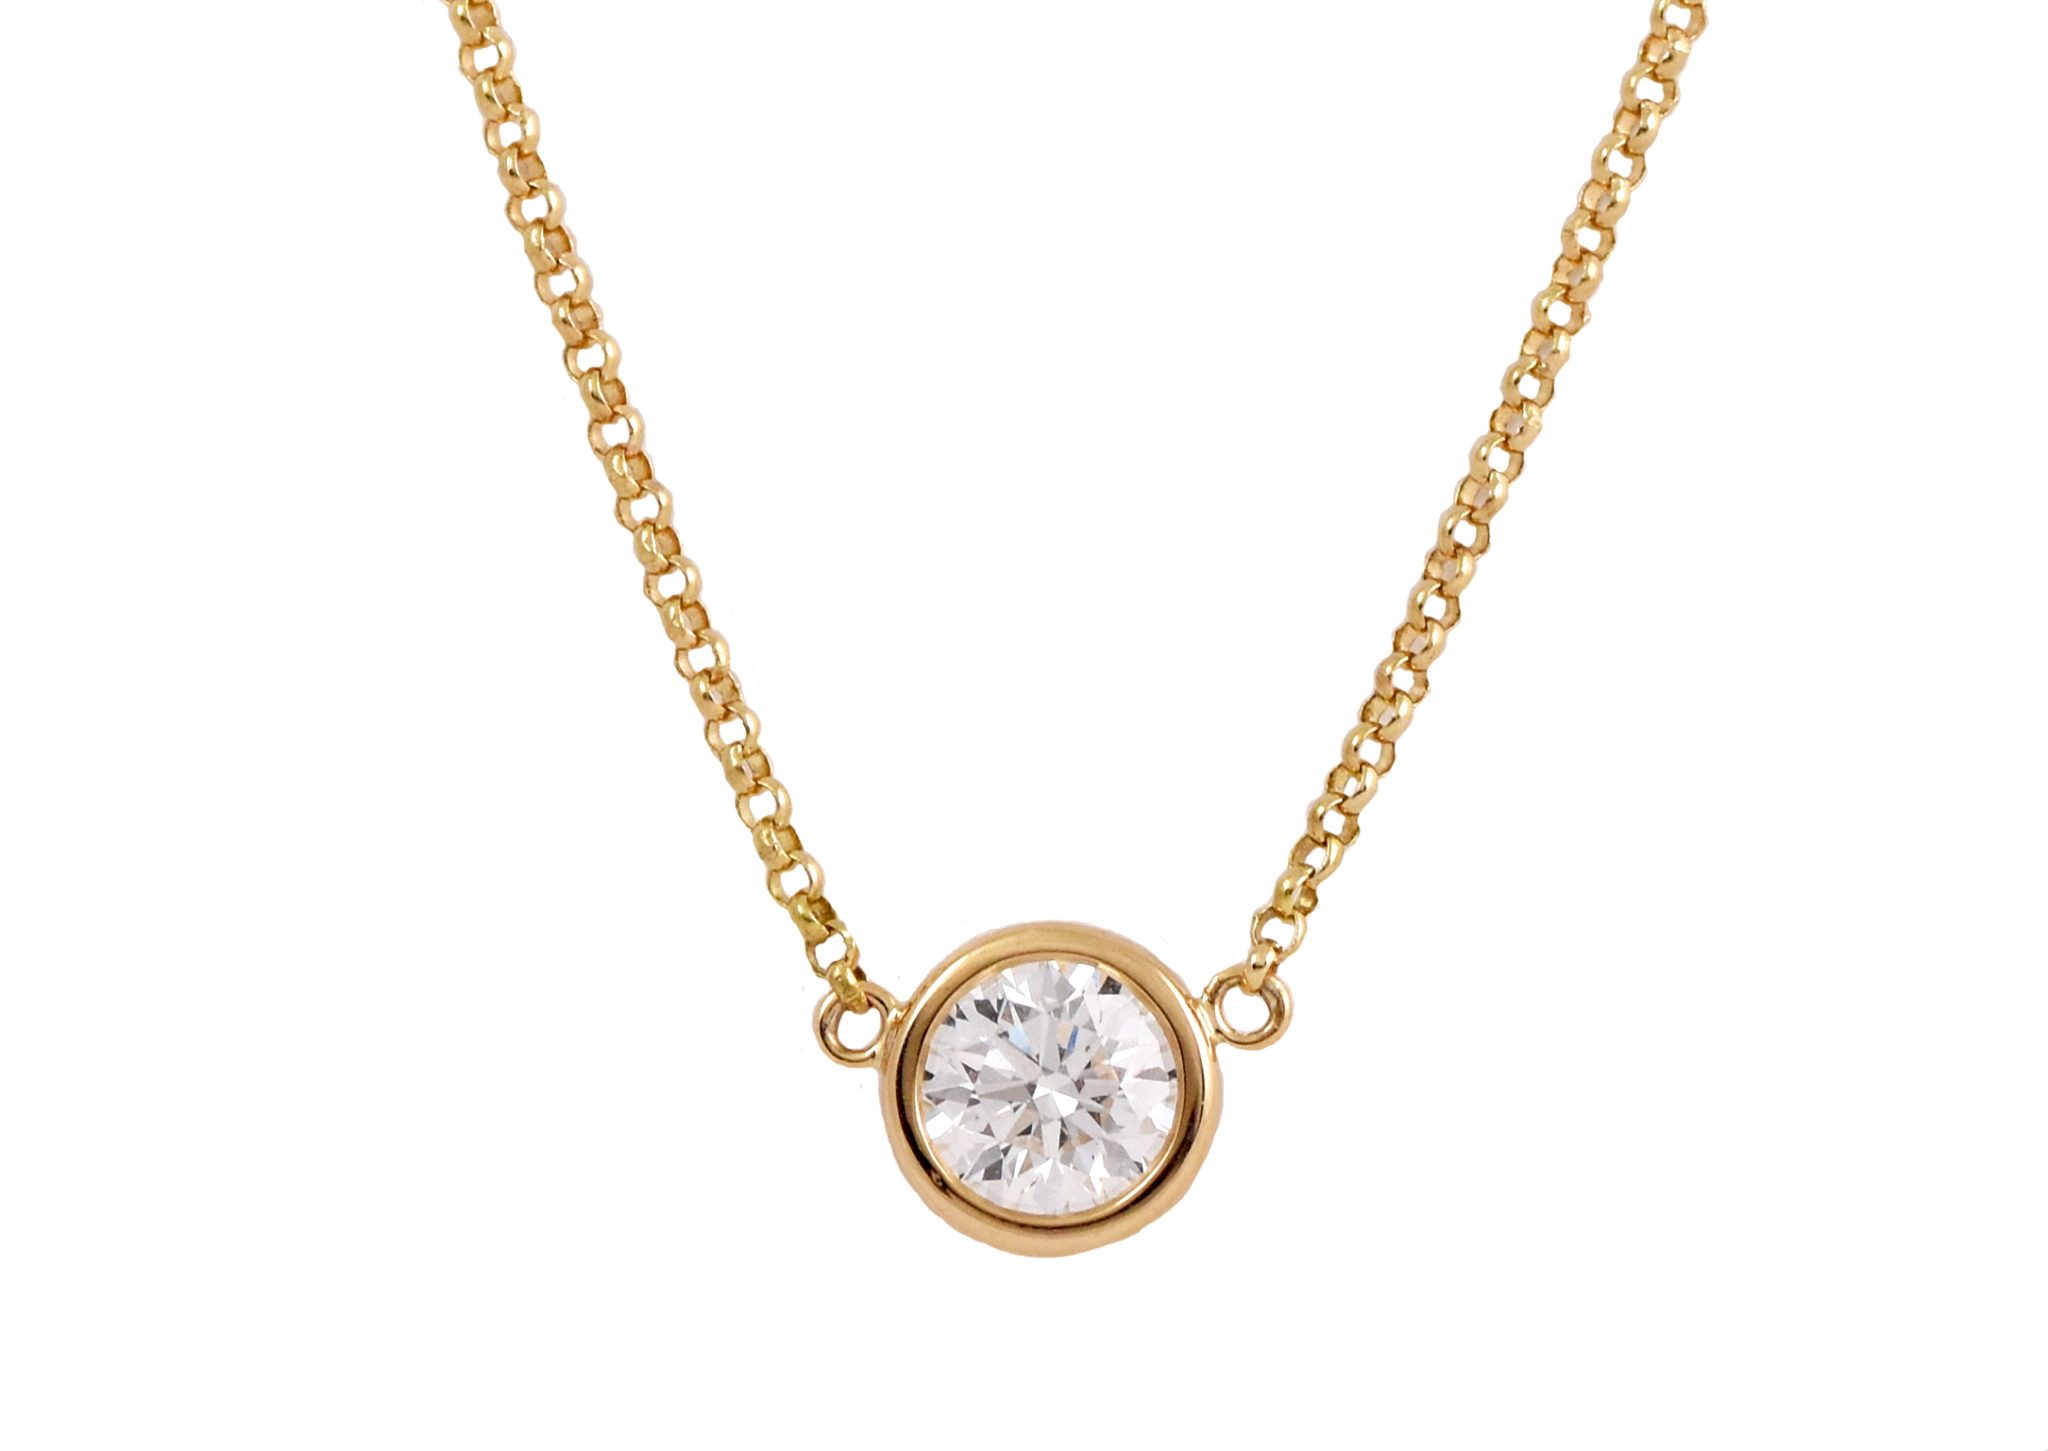 Bezel Set Diamond Pendant | B21276